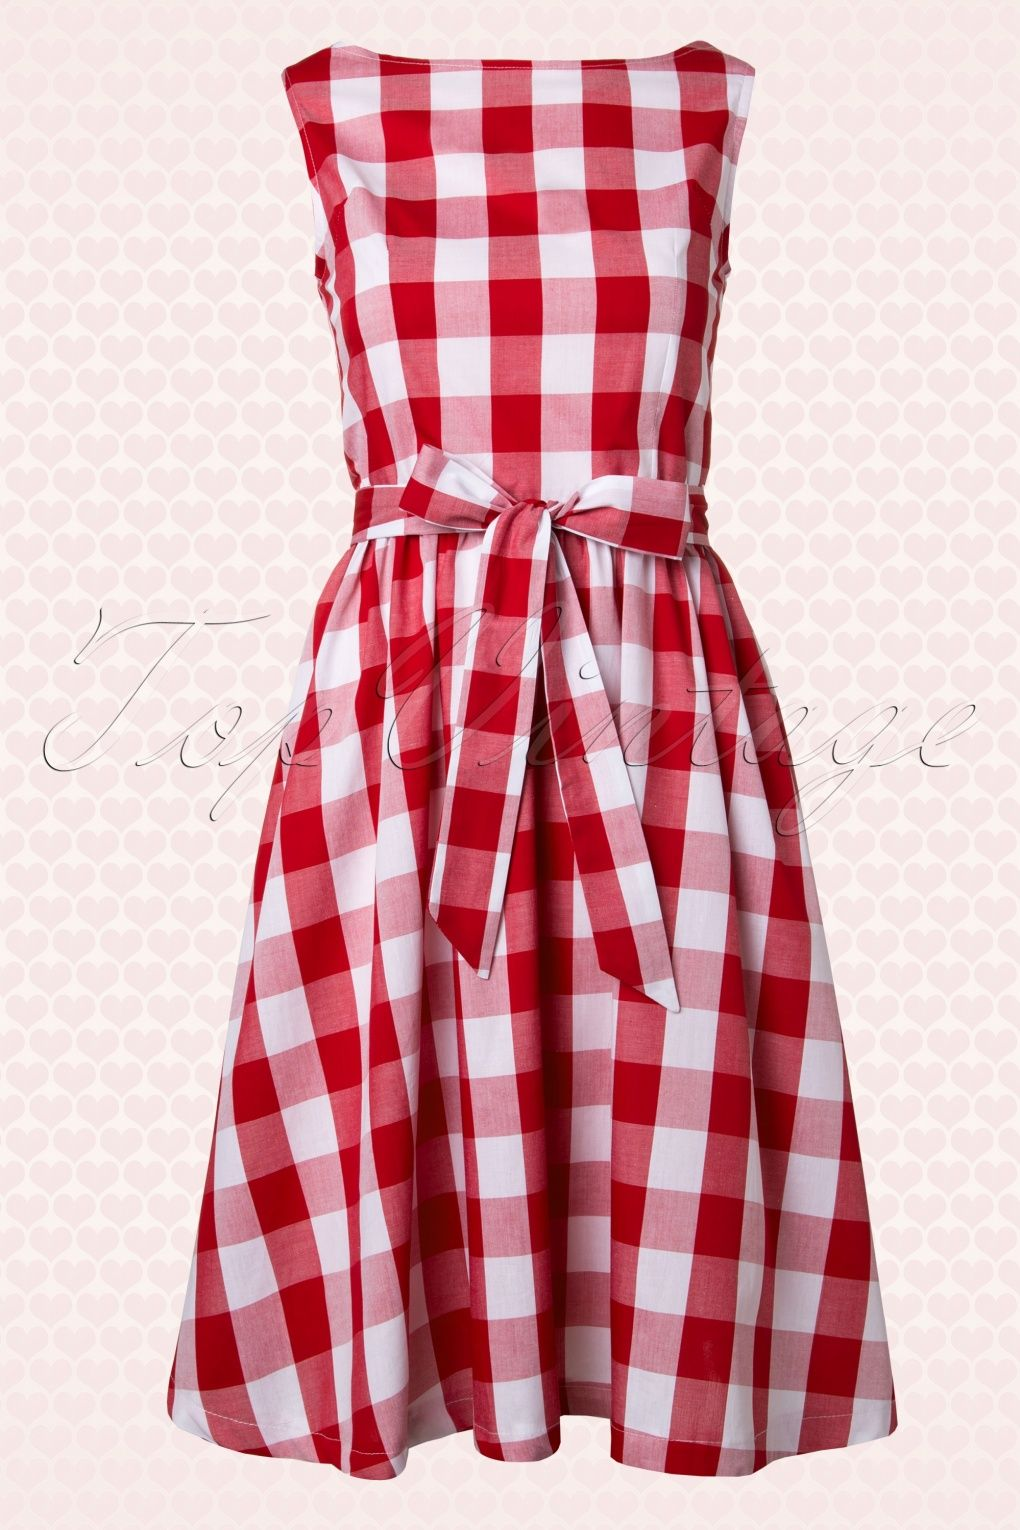 df17b0aa51 Lindy Bop - 50s Audrey Picnic Swing Dress in Red And White